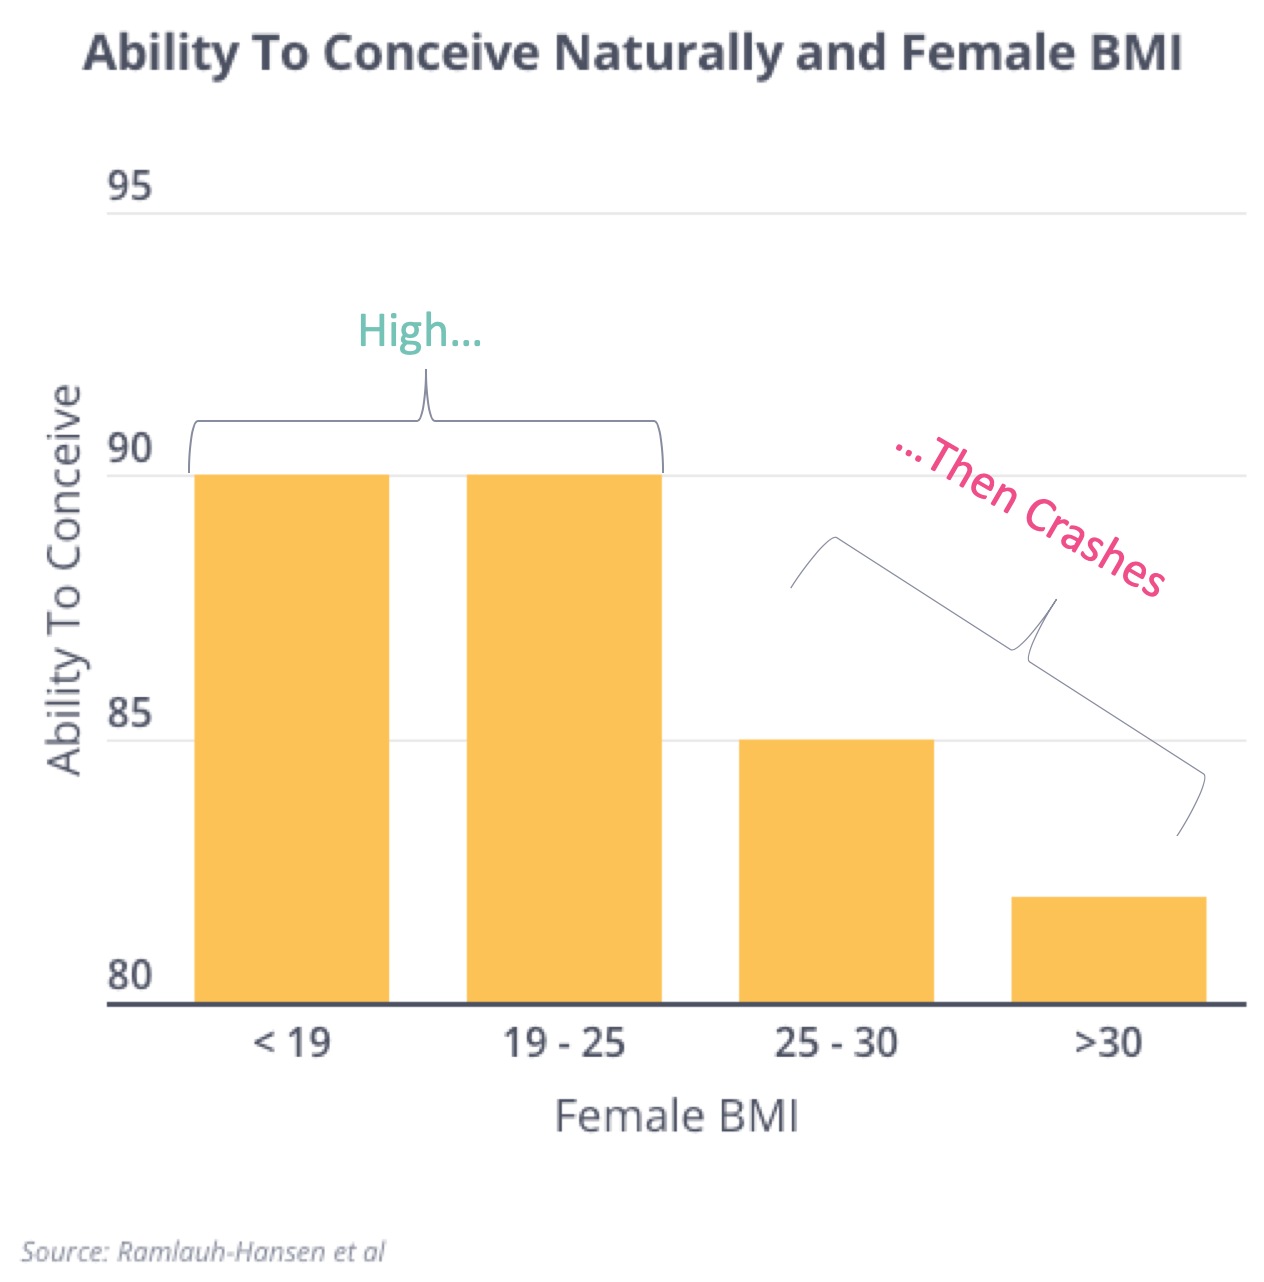 BMI and Natural Conception